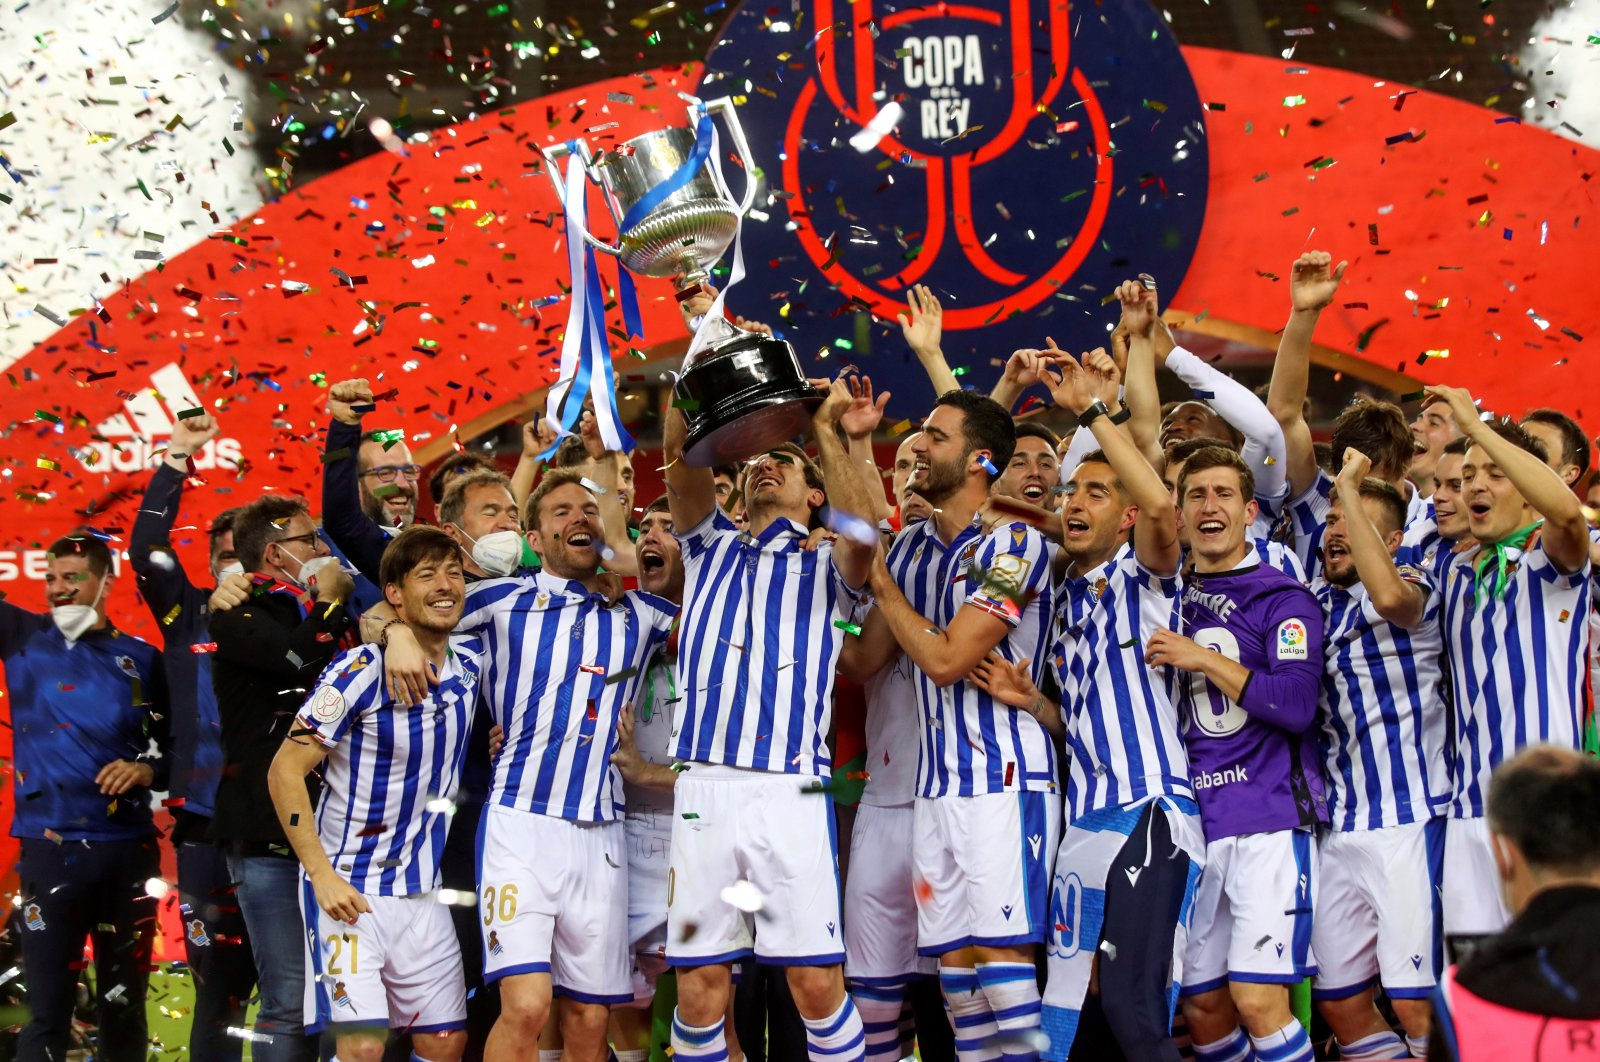 A handout photo made available by the Spanish Royal Soccer Federation (RFEF) shows Real Sociedad players after receiving the trophy from Spain's King Felipe VI (CL) after winning the 2020 Copa Del Rey final match against Athletic Bilbao at La Cartuja stadium in Seville, Andalusia, Spain, April 03, 2921. (RFEF via EPA)